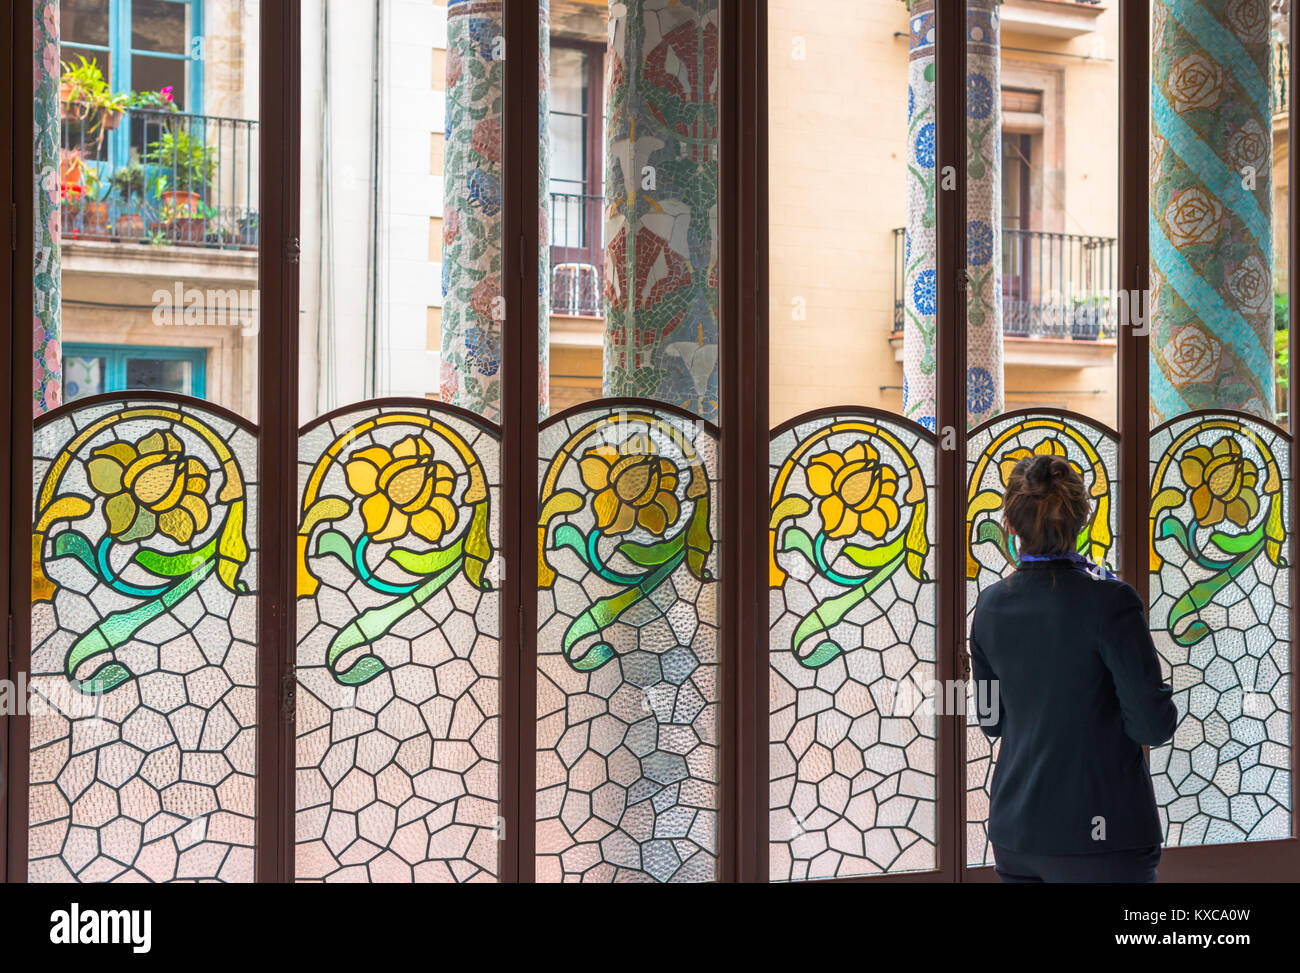 Palace glass windows stock photos palace glass windows stock tour guide looks out of decorative stained glass windows at the palace of catalan music planetlyrics Image collections